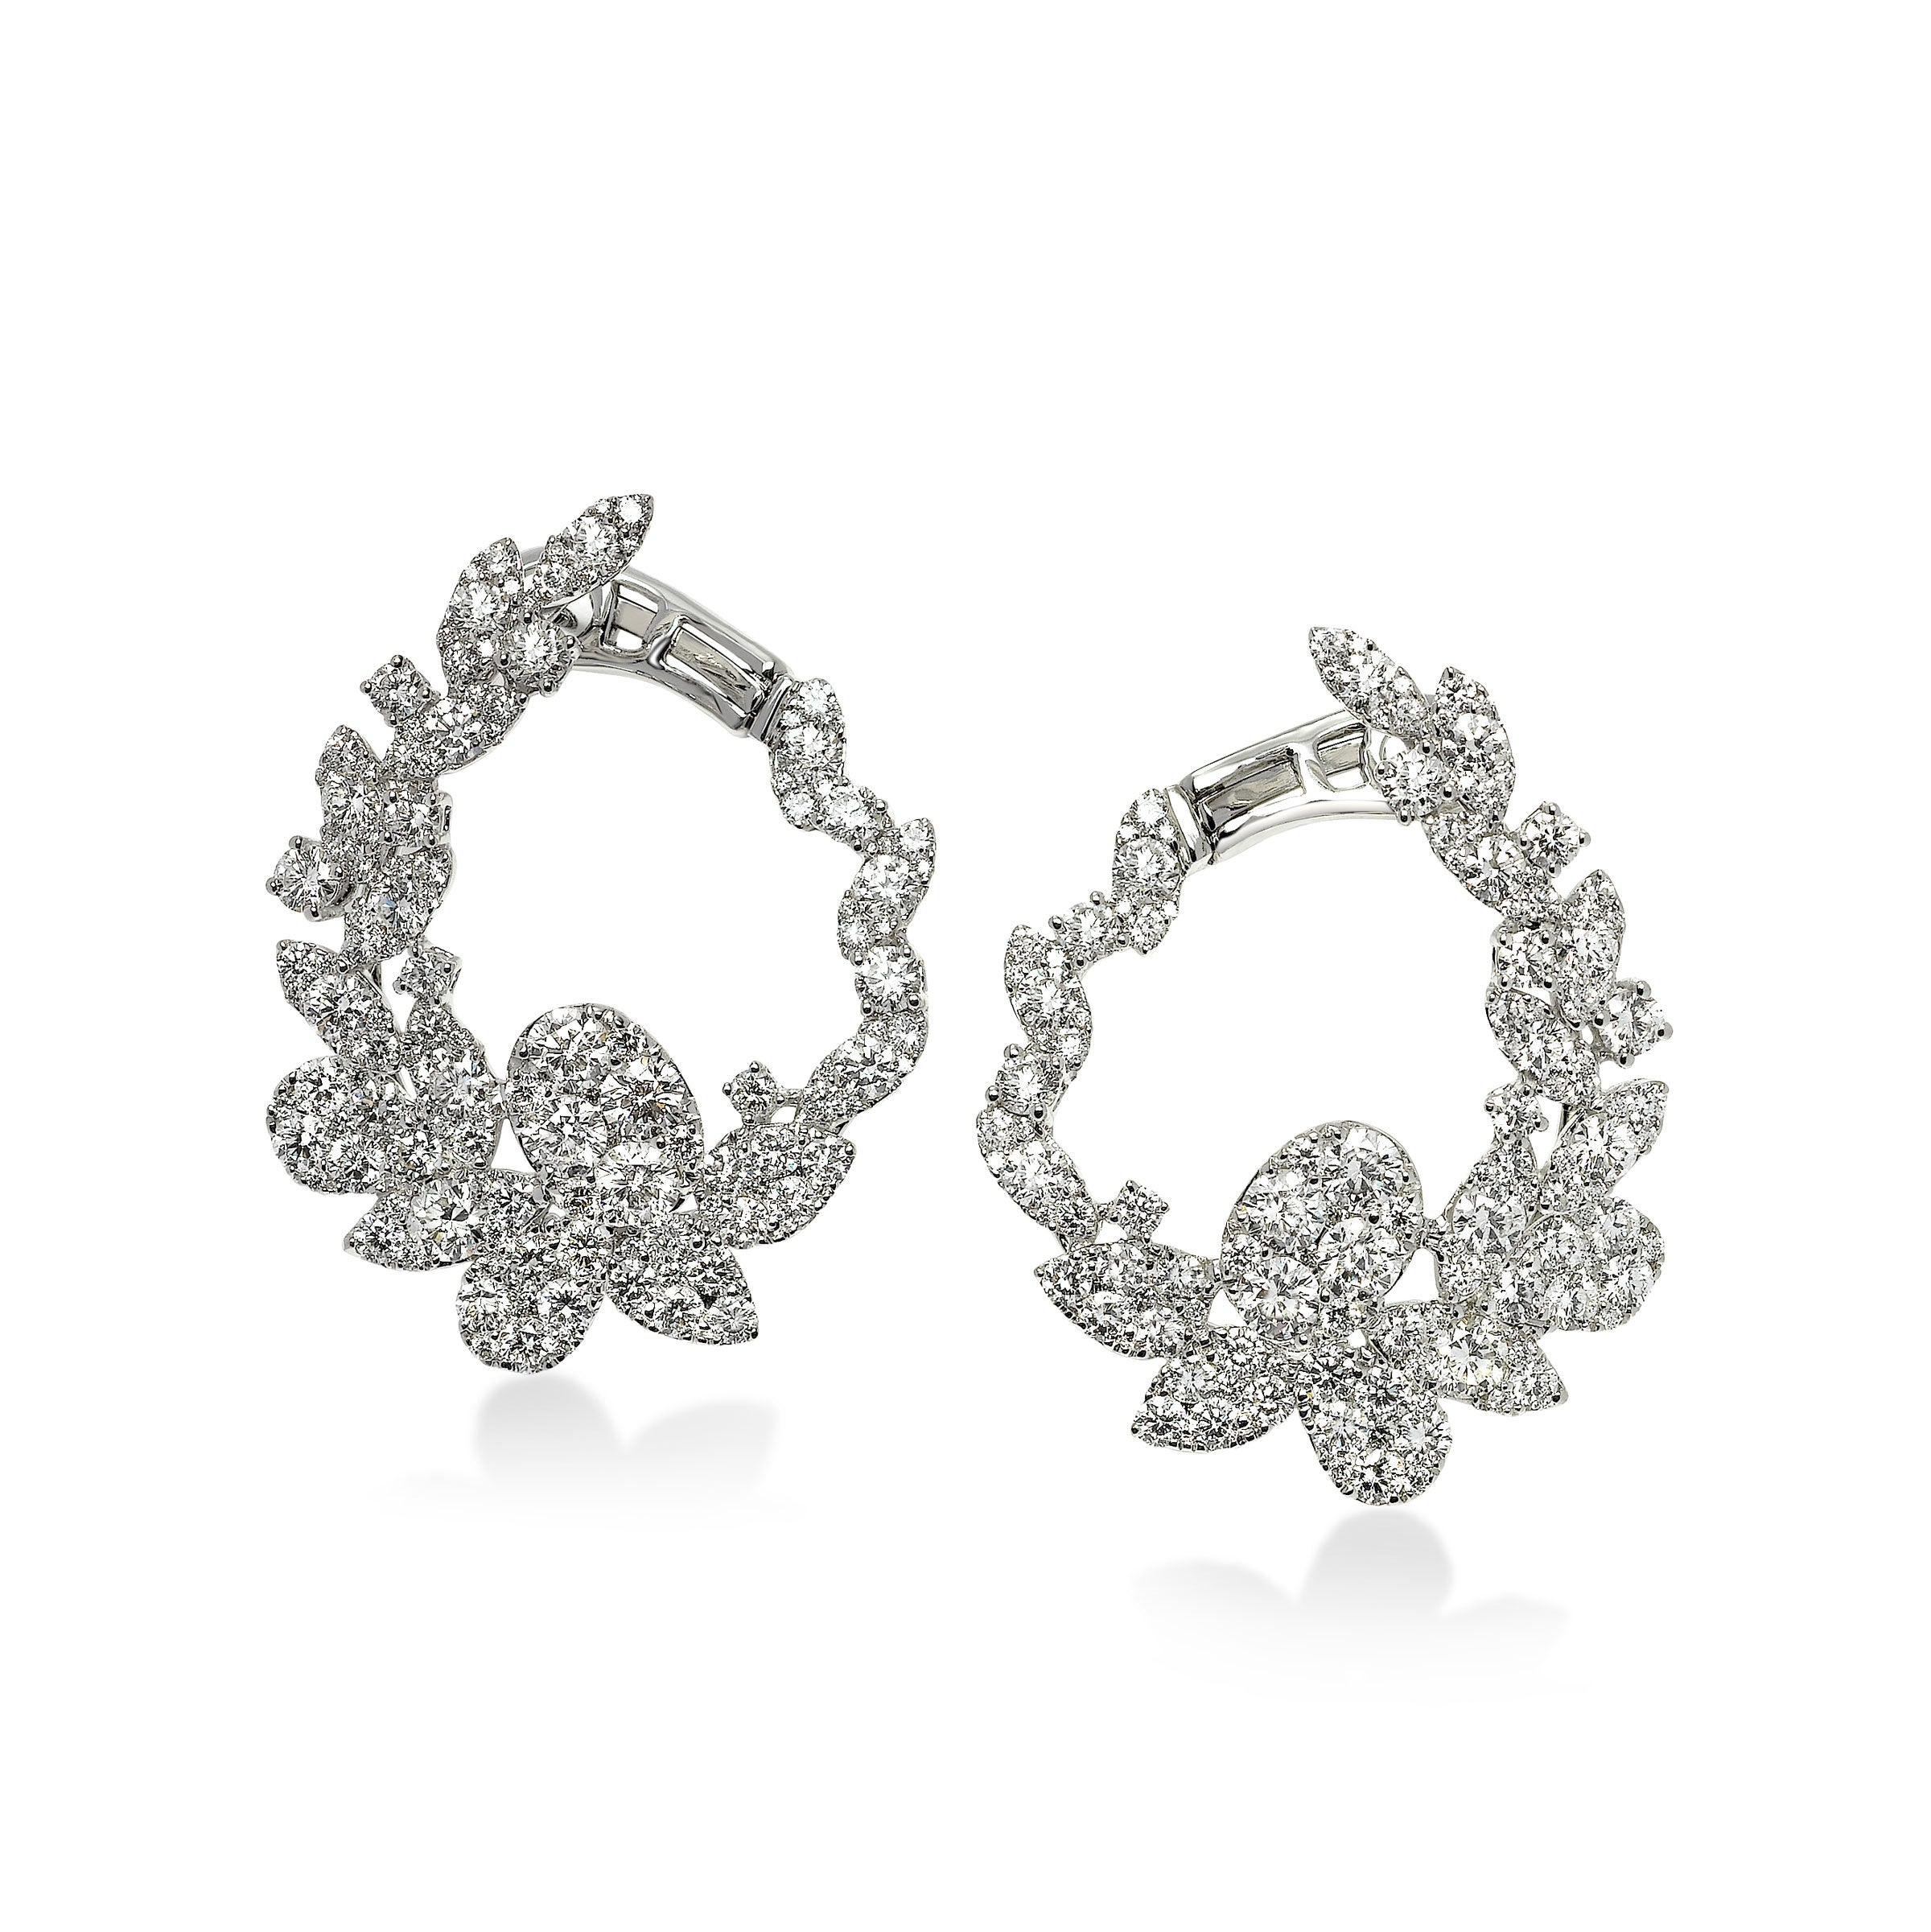 Elegant Diamond Flower Petal Earrings, 18K White Gold